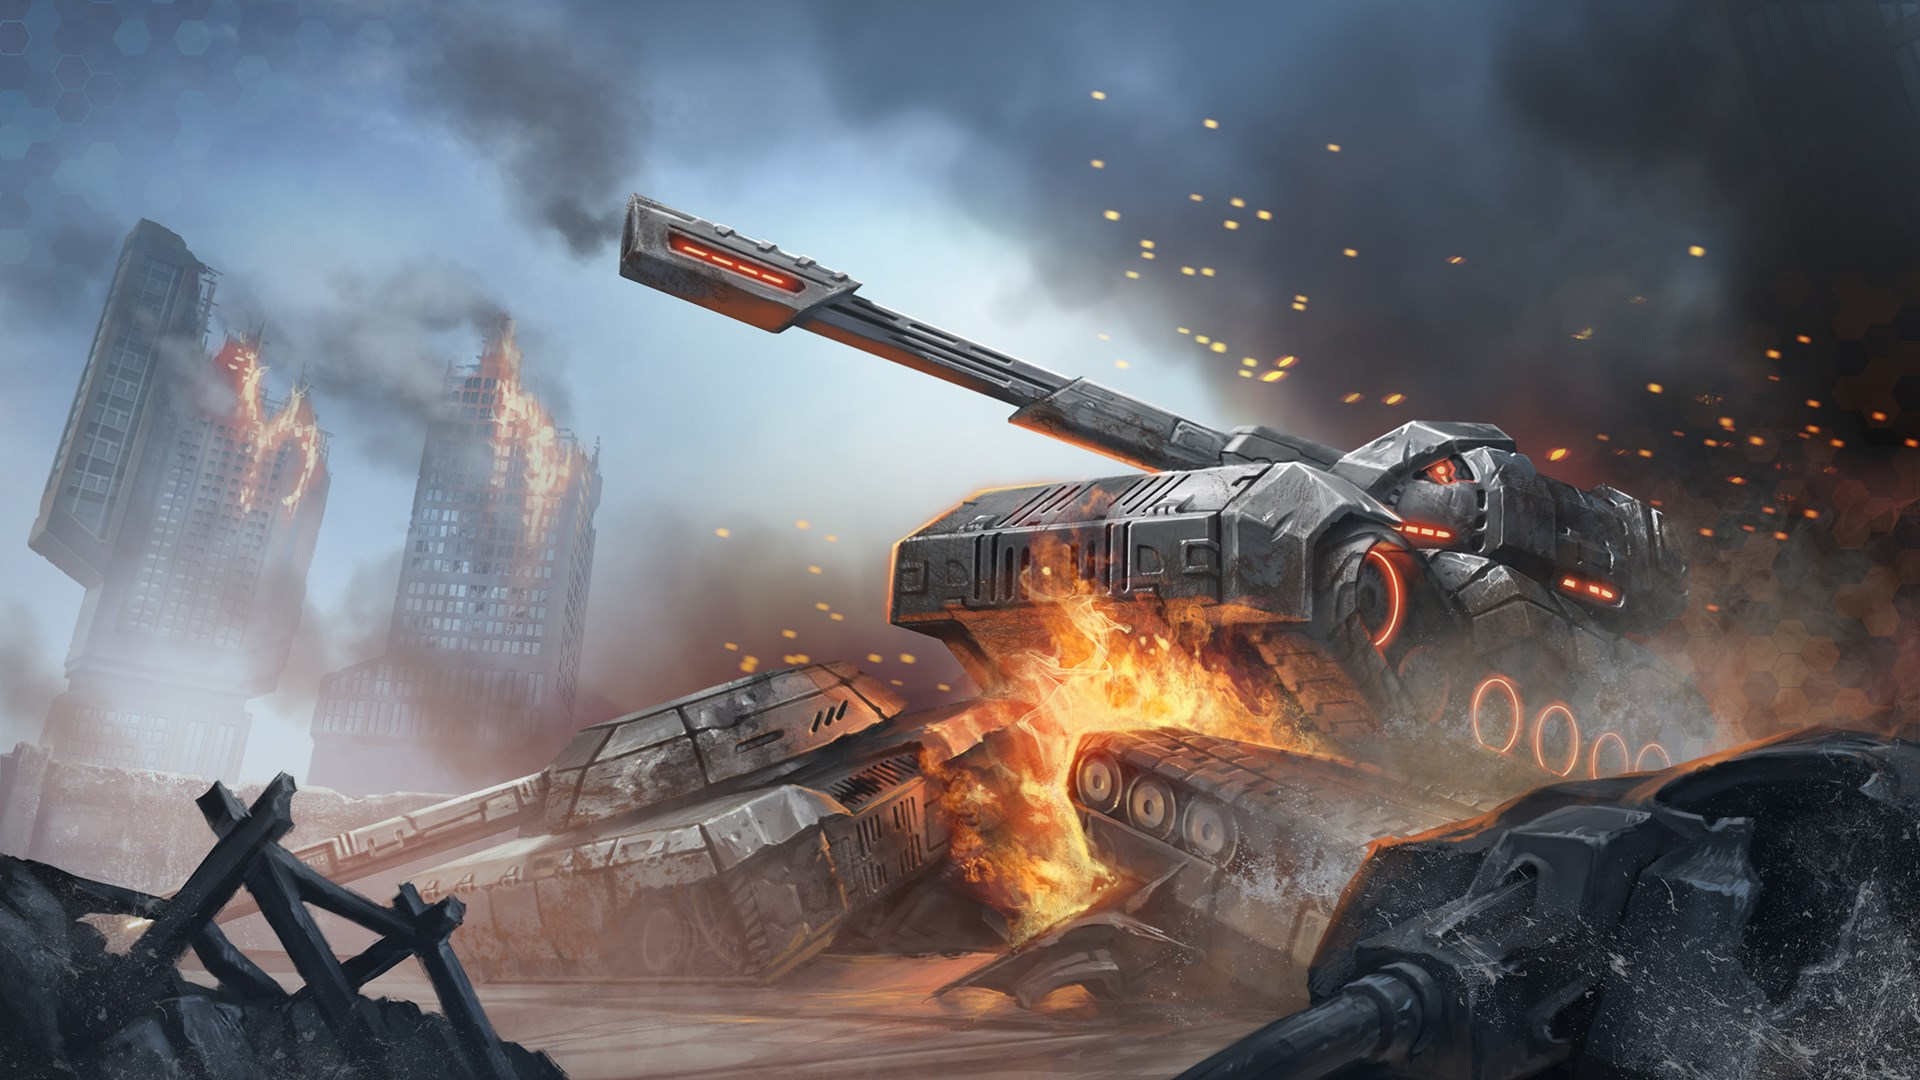 4k Wallpapers World War Z Game: Get Iron Tanks: Battle Online